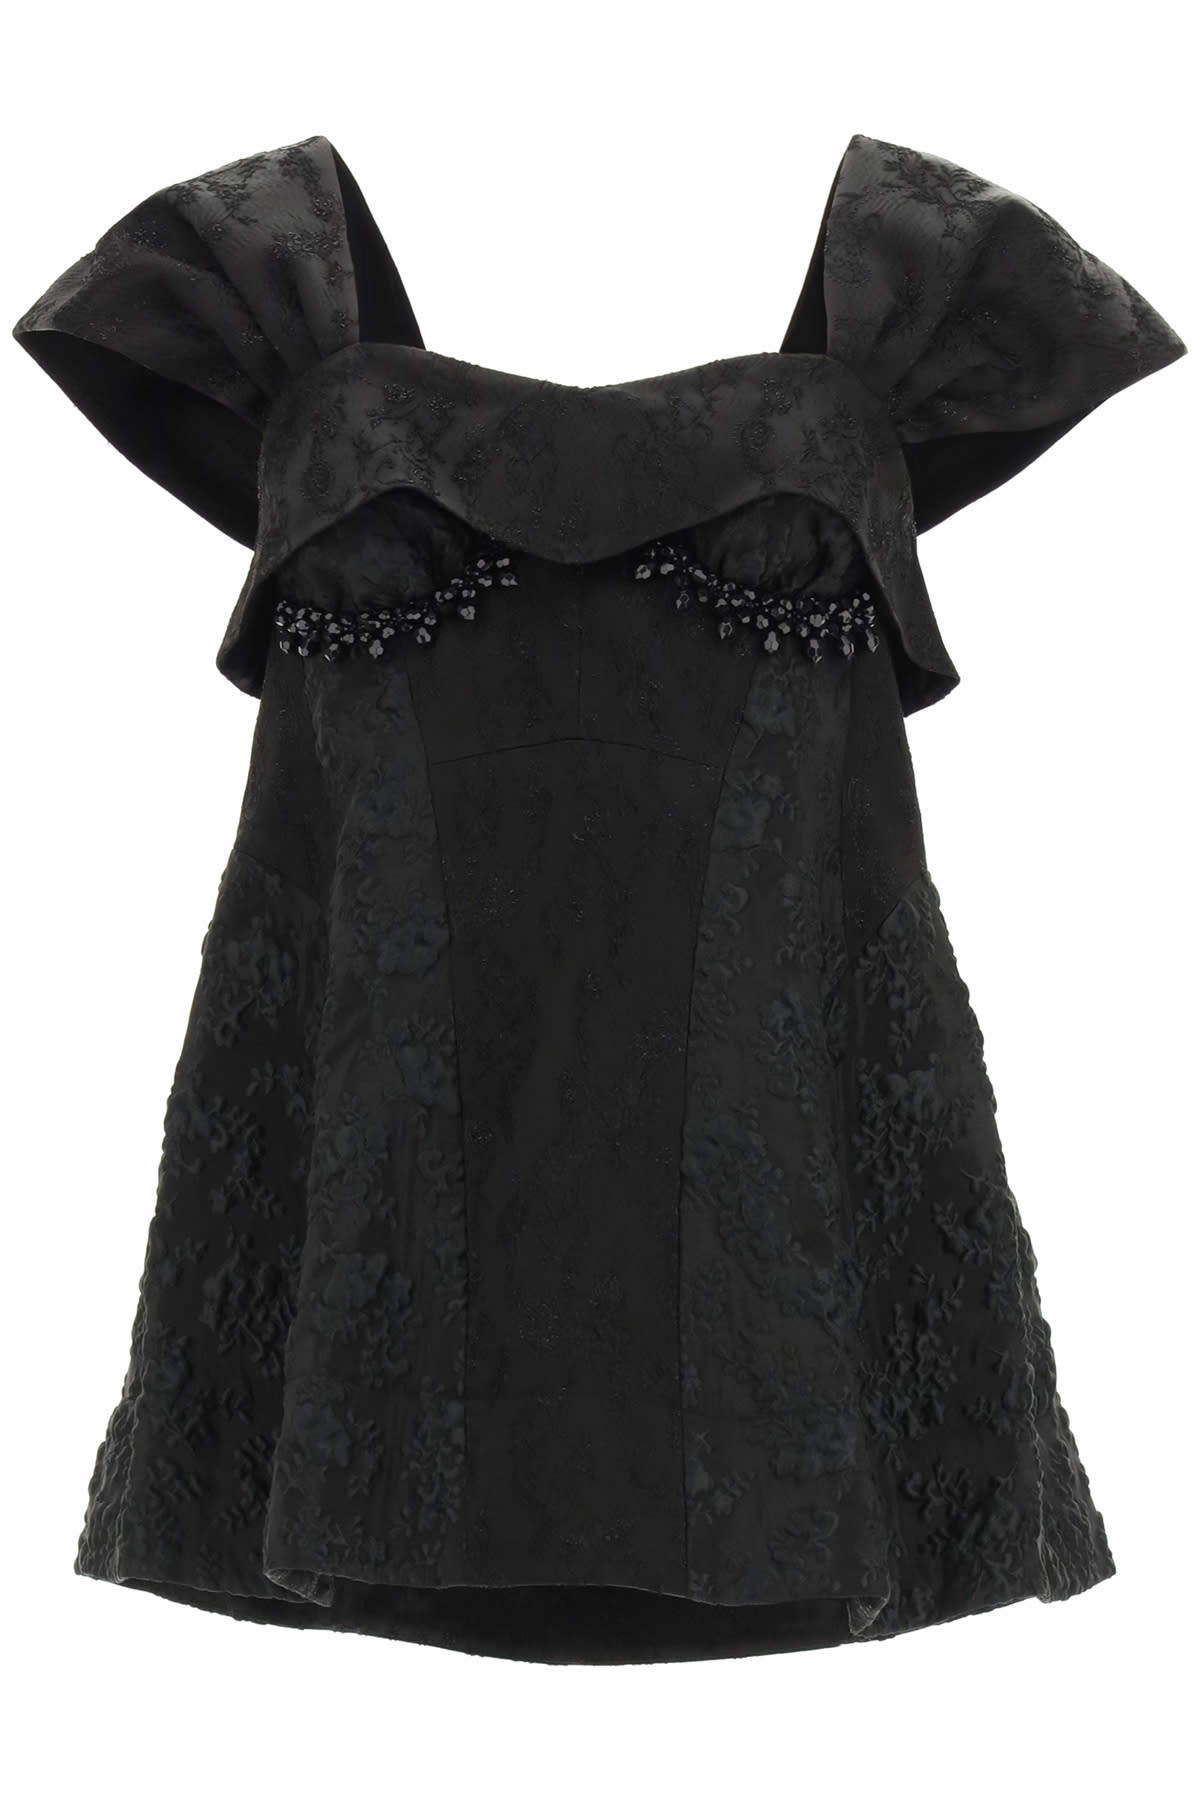 Simone Rocha SHAPED JACQUARD TOP